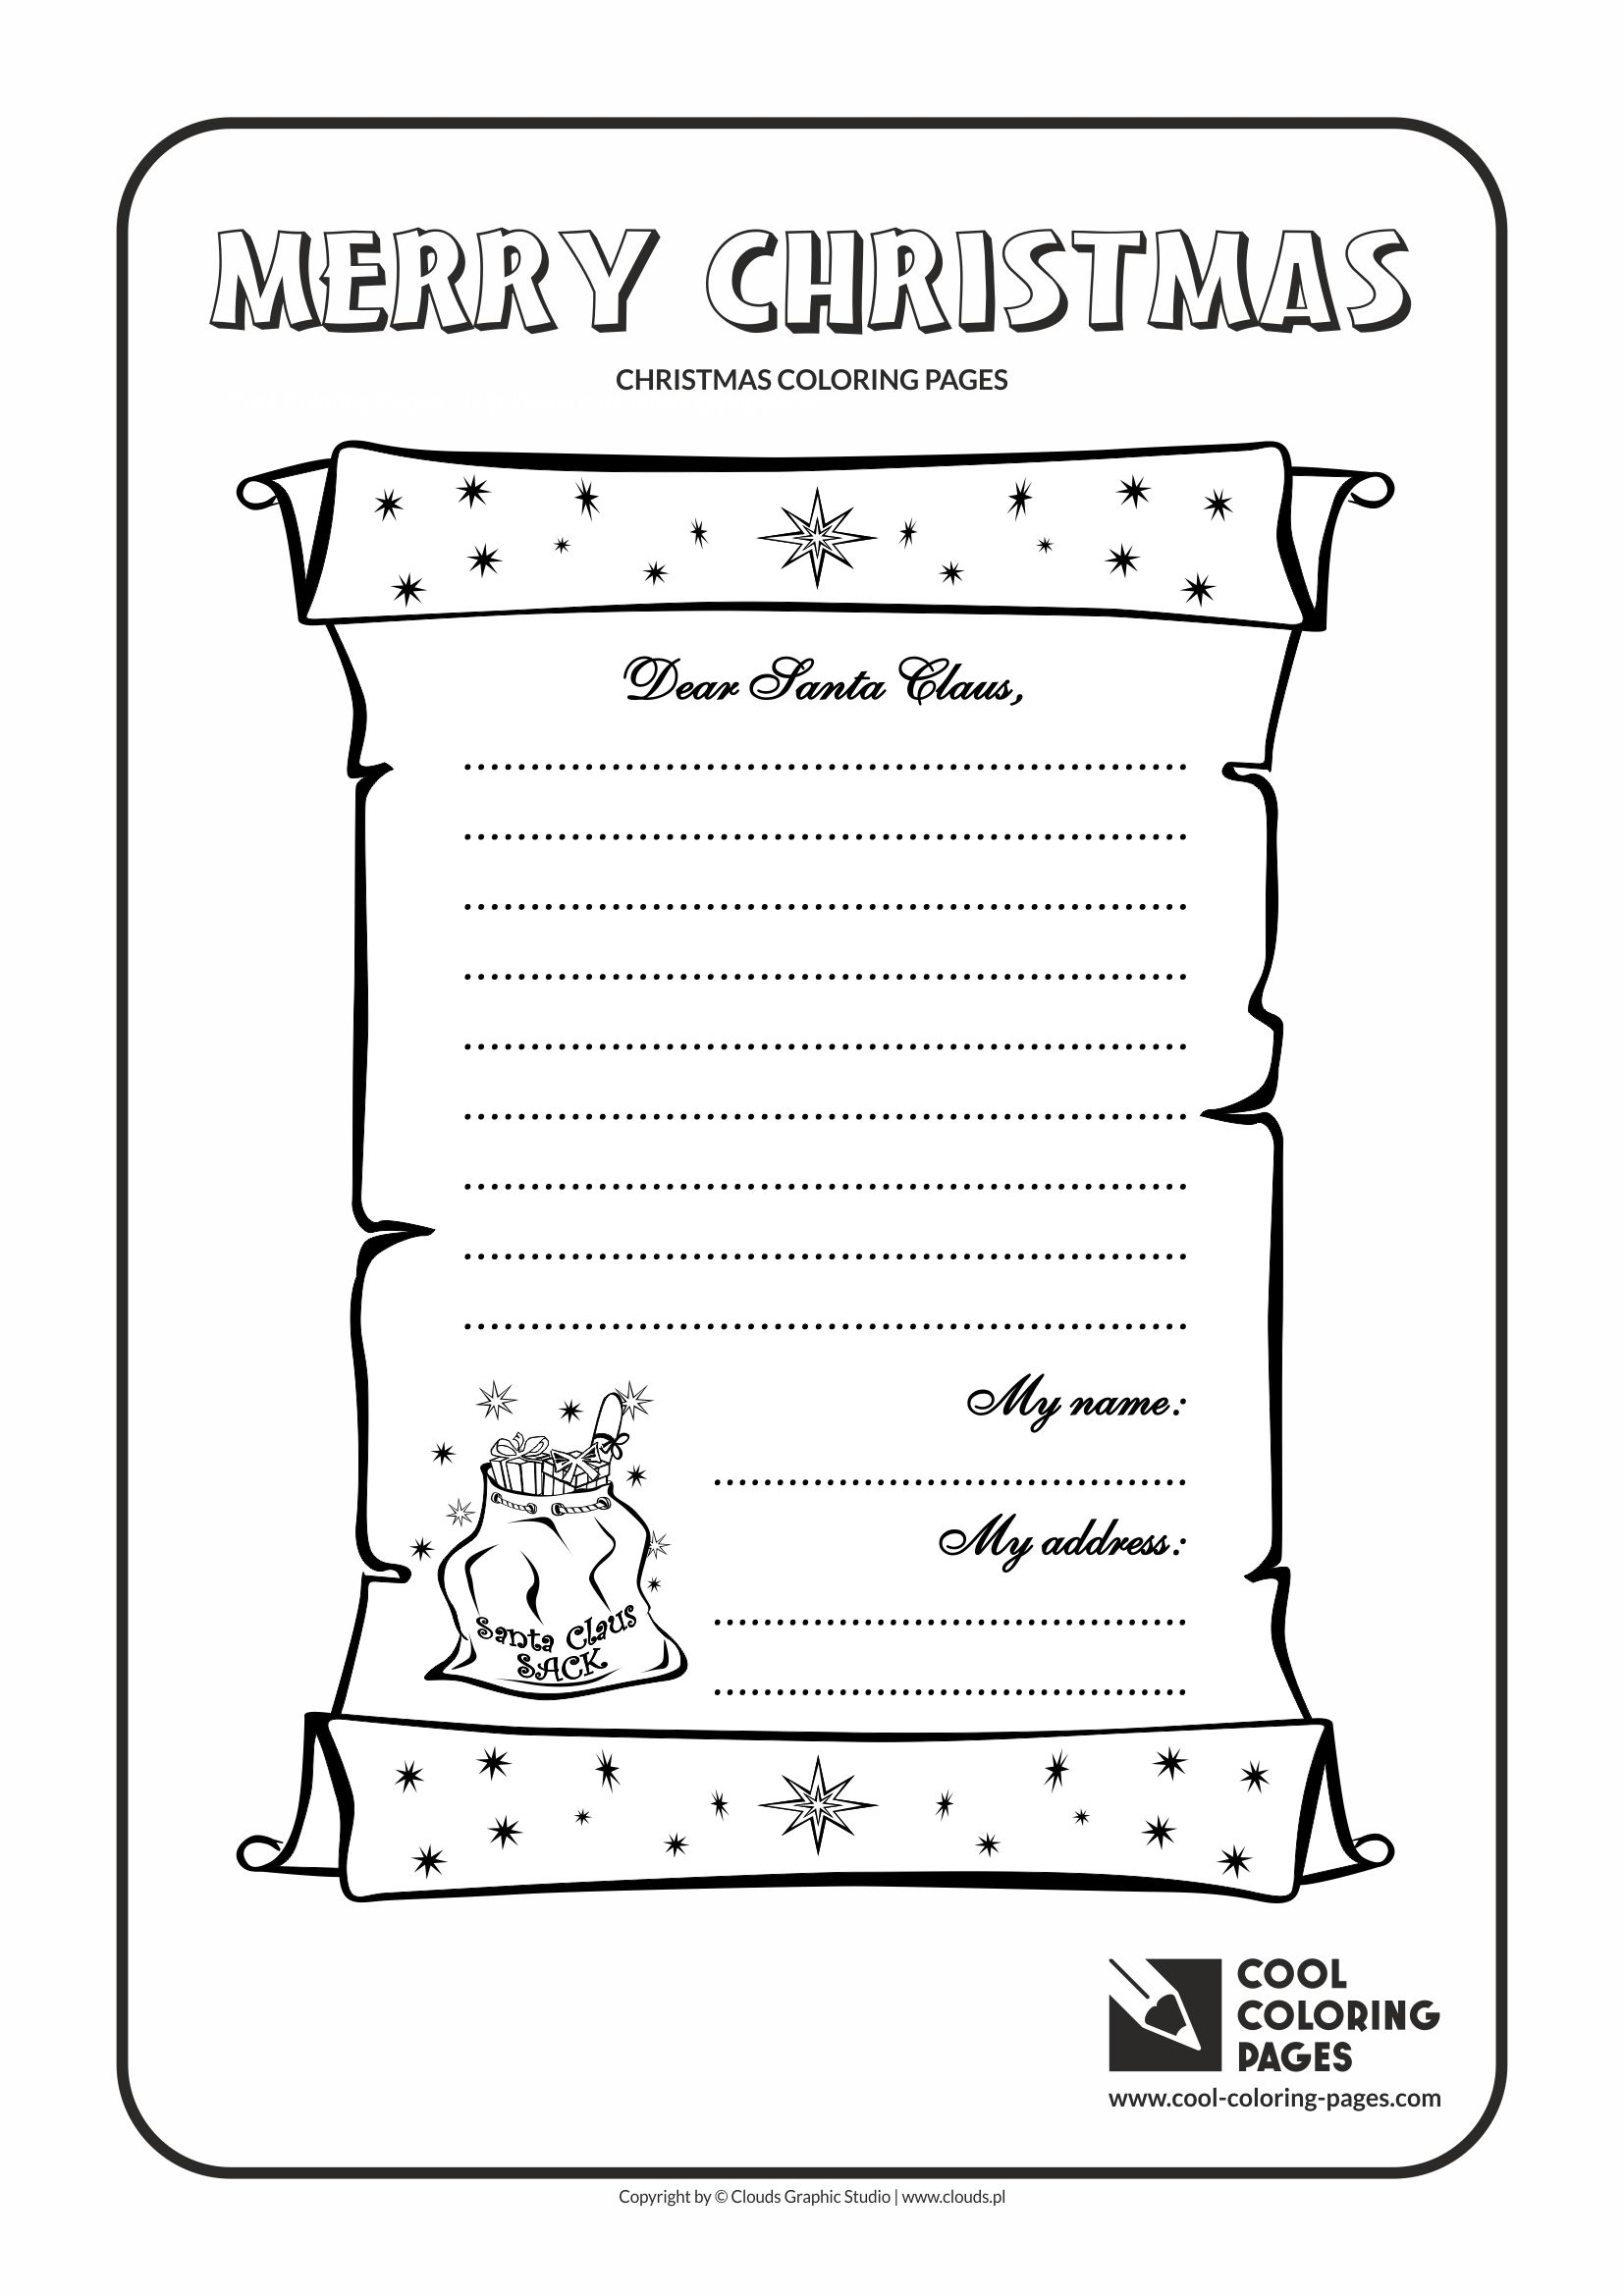 Cool Coloring Pages Letter To Santa Claus No 1 Coloring